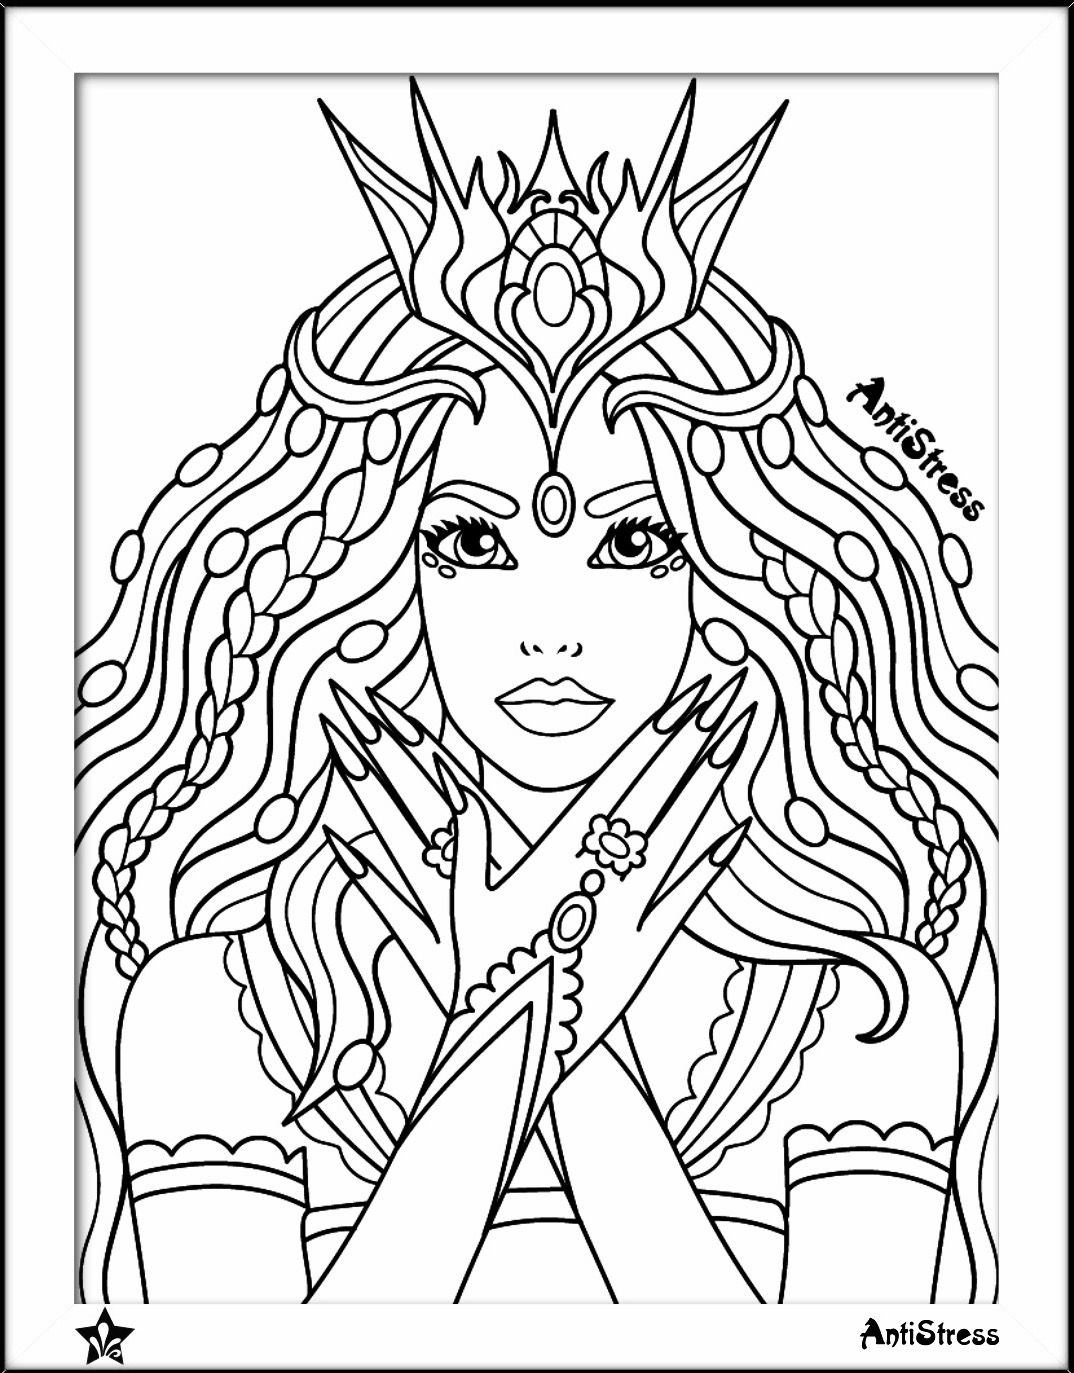 Adult colouring page | Coloring Pages for Adults | Pinterest ...